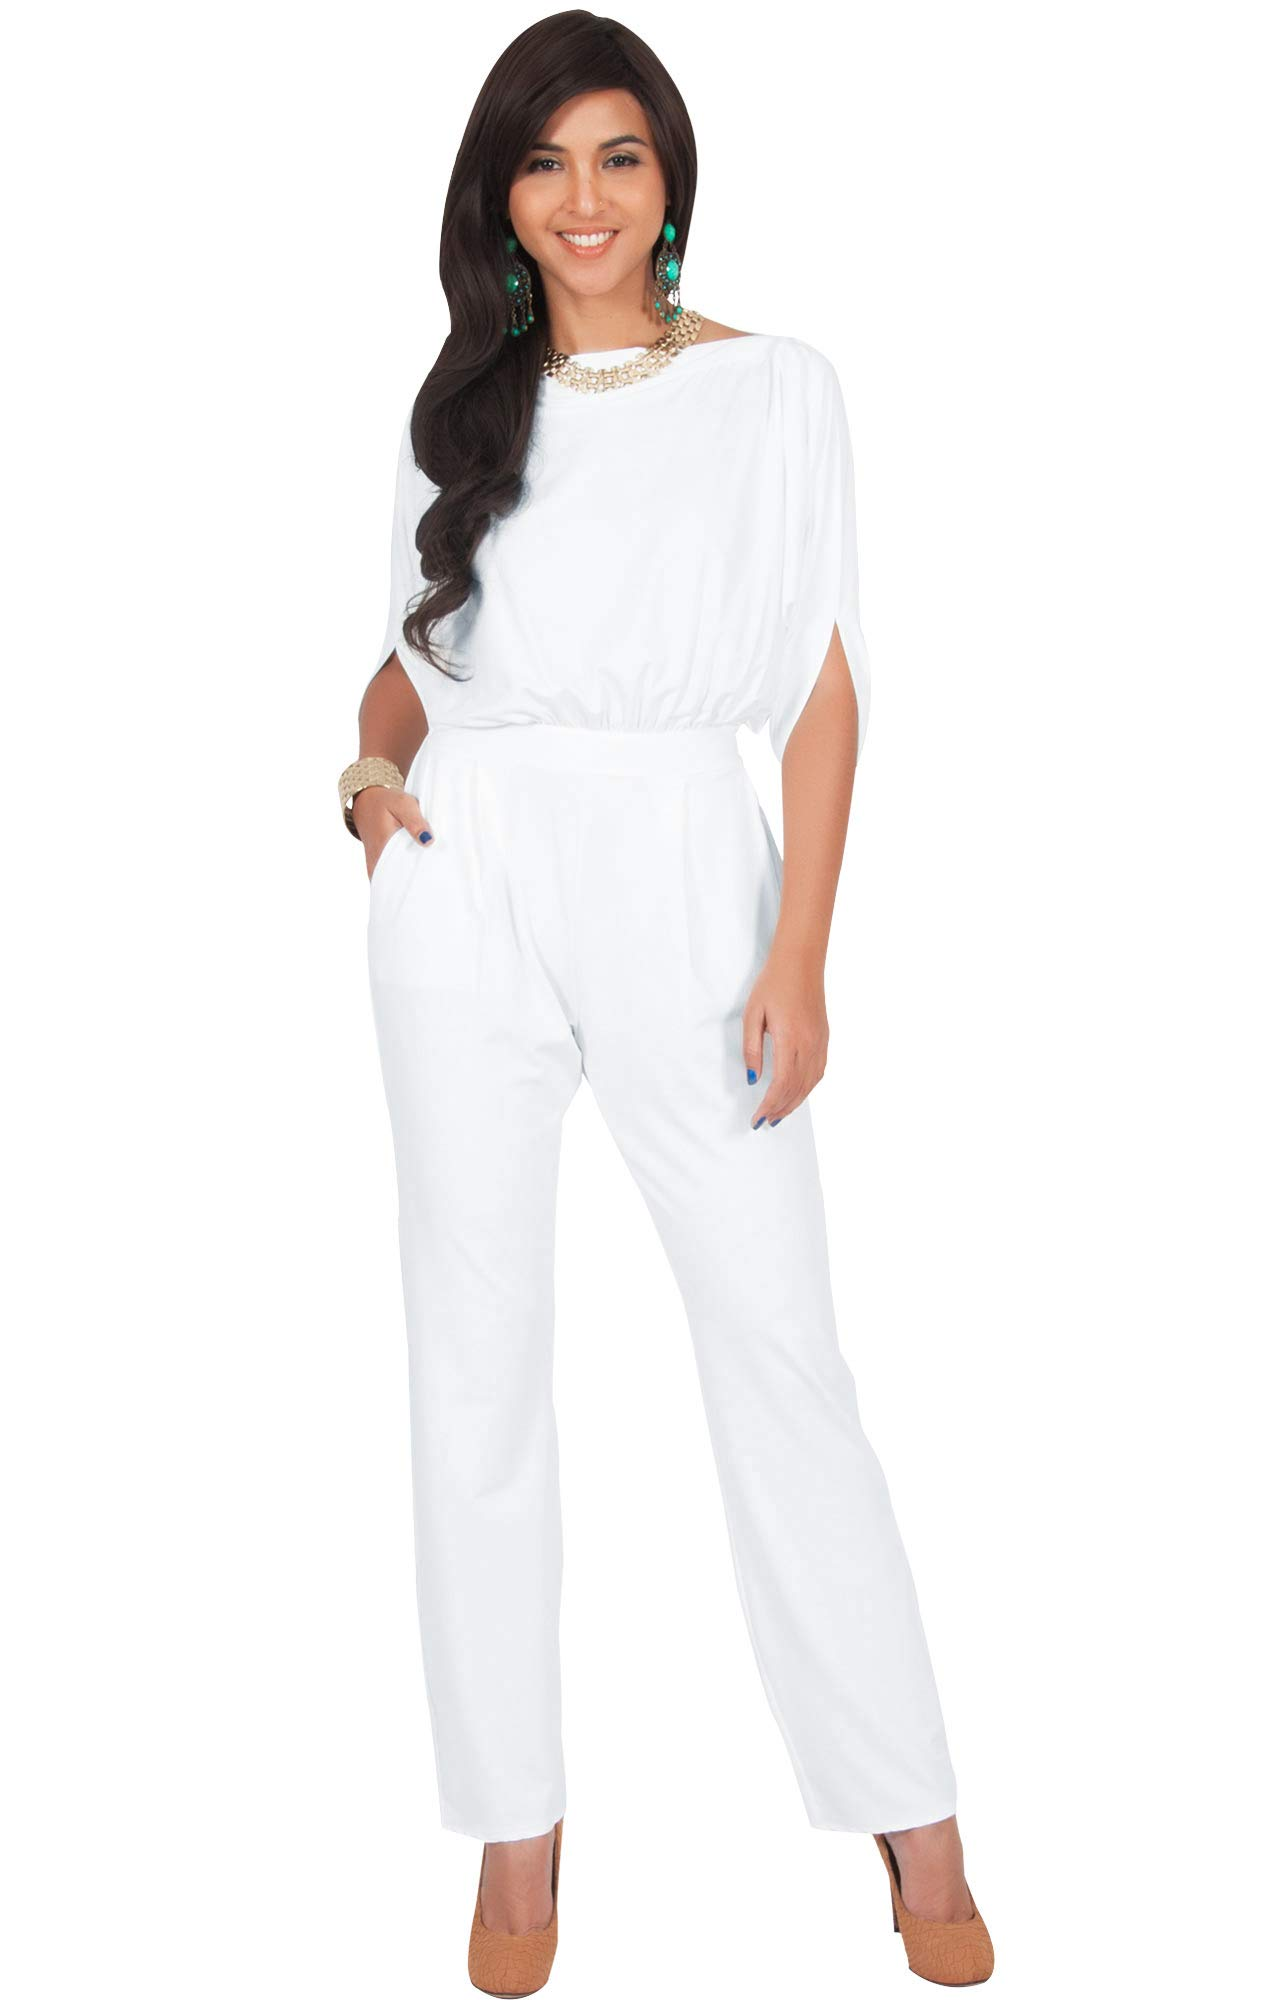 KOH KOH Petite Womens Short Sleeve Sexy Formal Cocktail Casual Cute Long Pants One Piece Fall Pockets Dressy Jumpsuit Romper Long Leg Pant Suit Suits Outfit Playsuit, White S 4-6